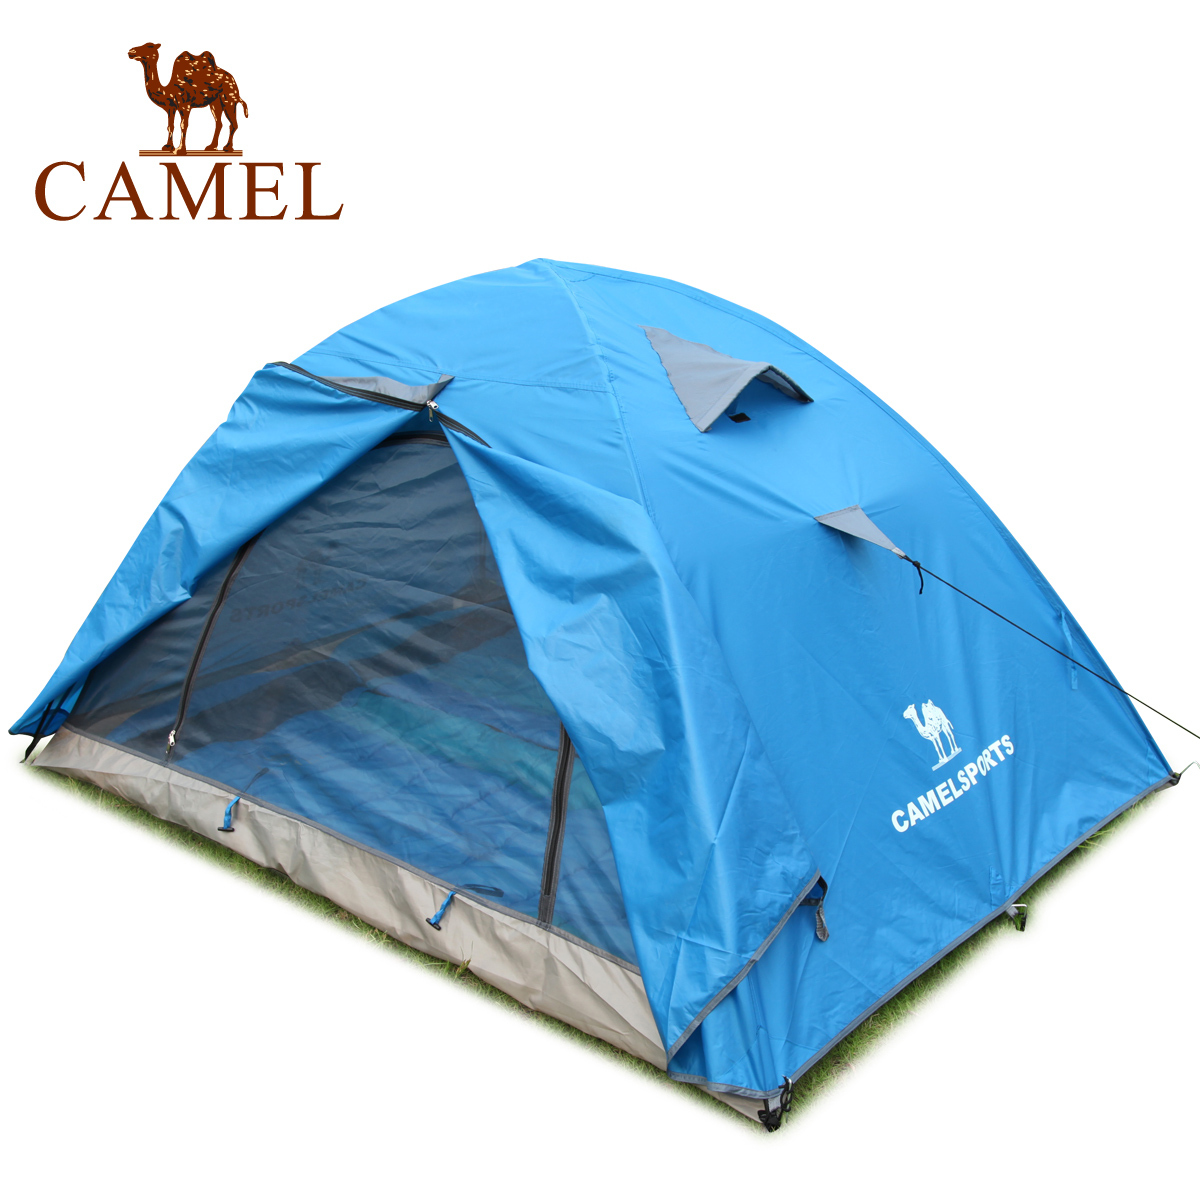 Camel outdoor tent double layer camping tent outdoor products many people tent house(China (Mainland))